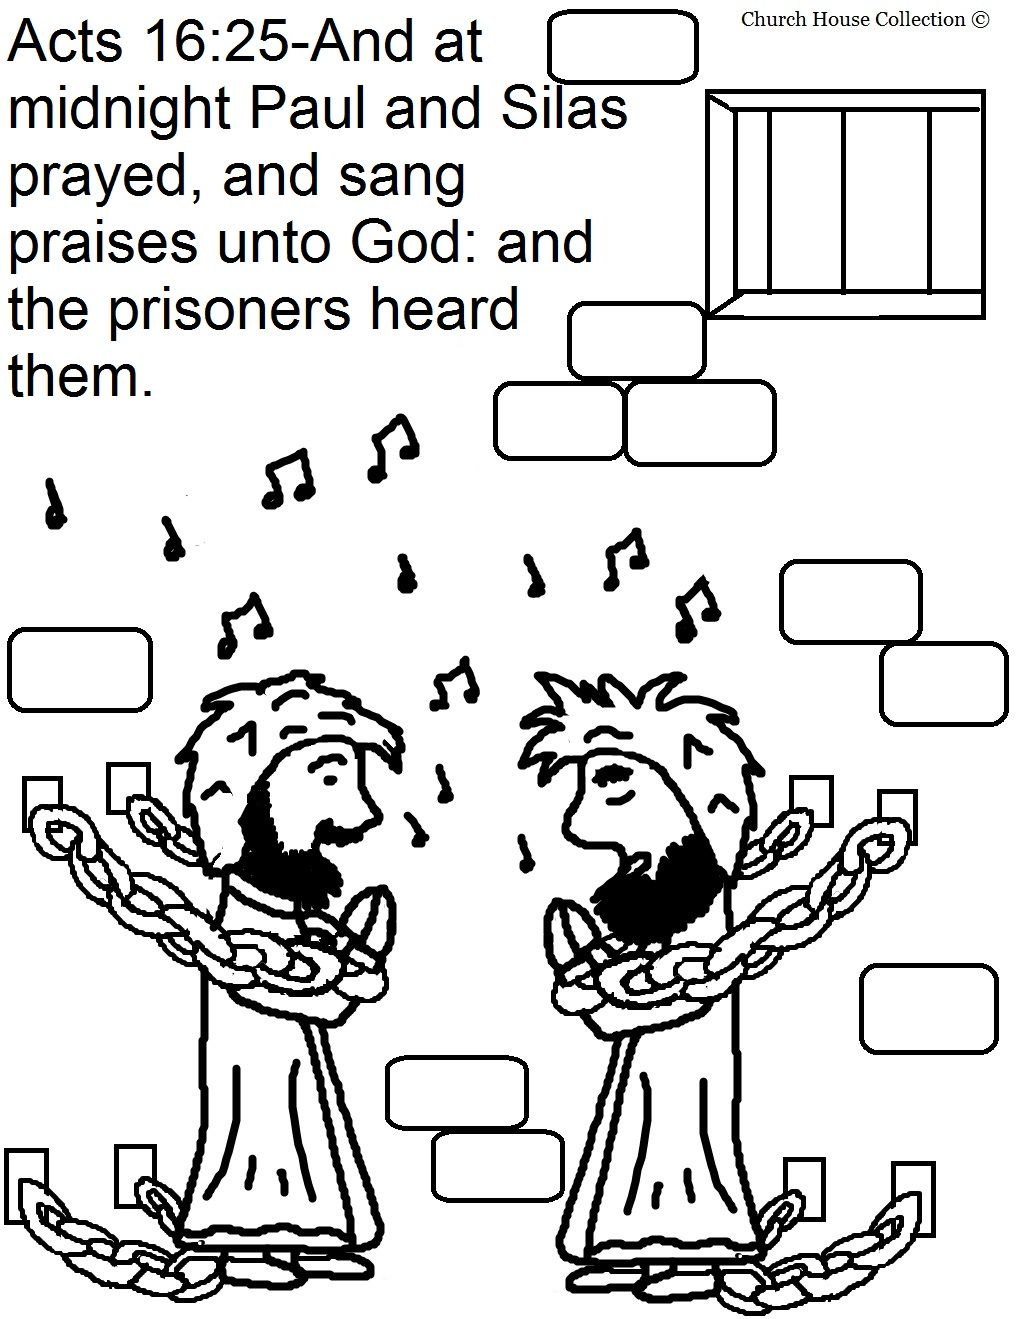 Day 3 Coloring Page Sunday School Coloring Pages Paul And Silas